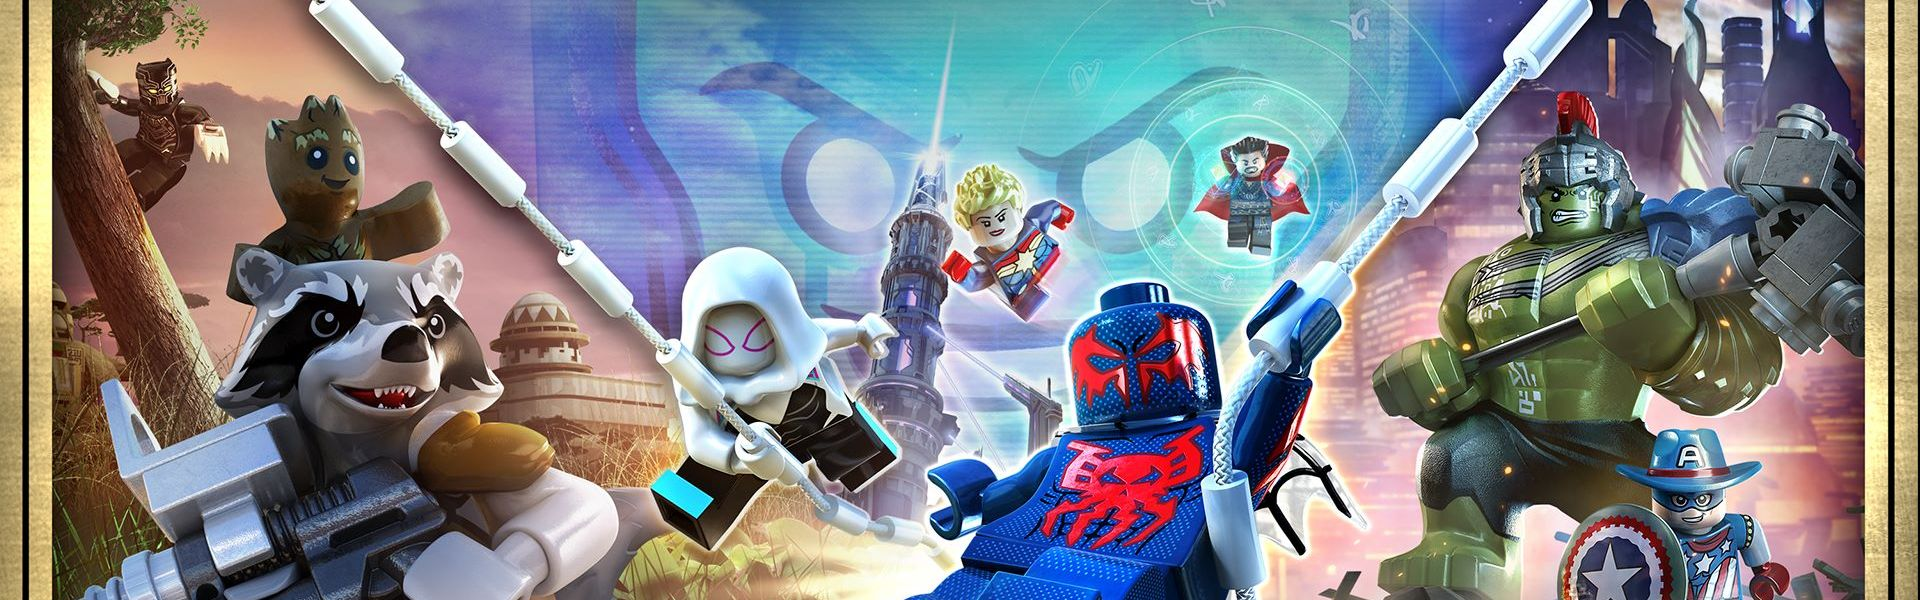 LEGO: Marvel Super Heroes 2 (Deluxe Edition) Steam Key GLOBAL